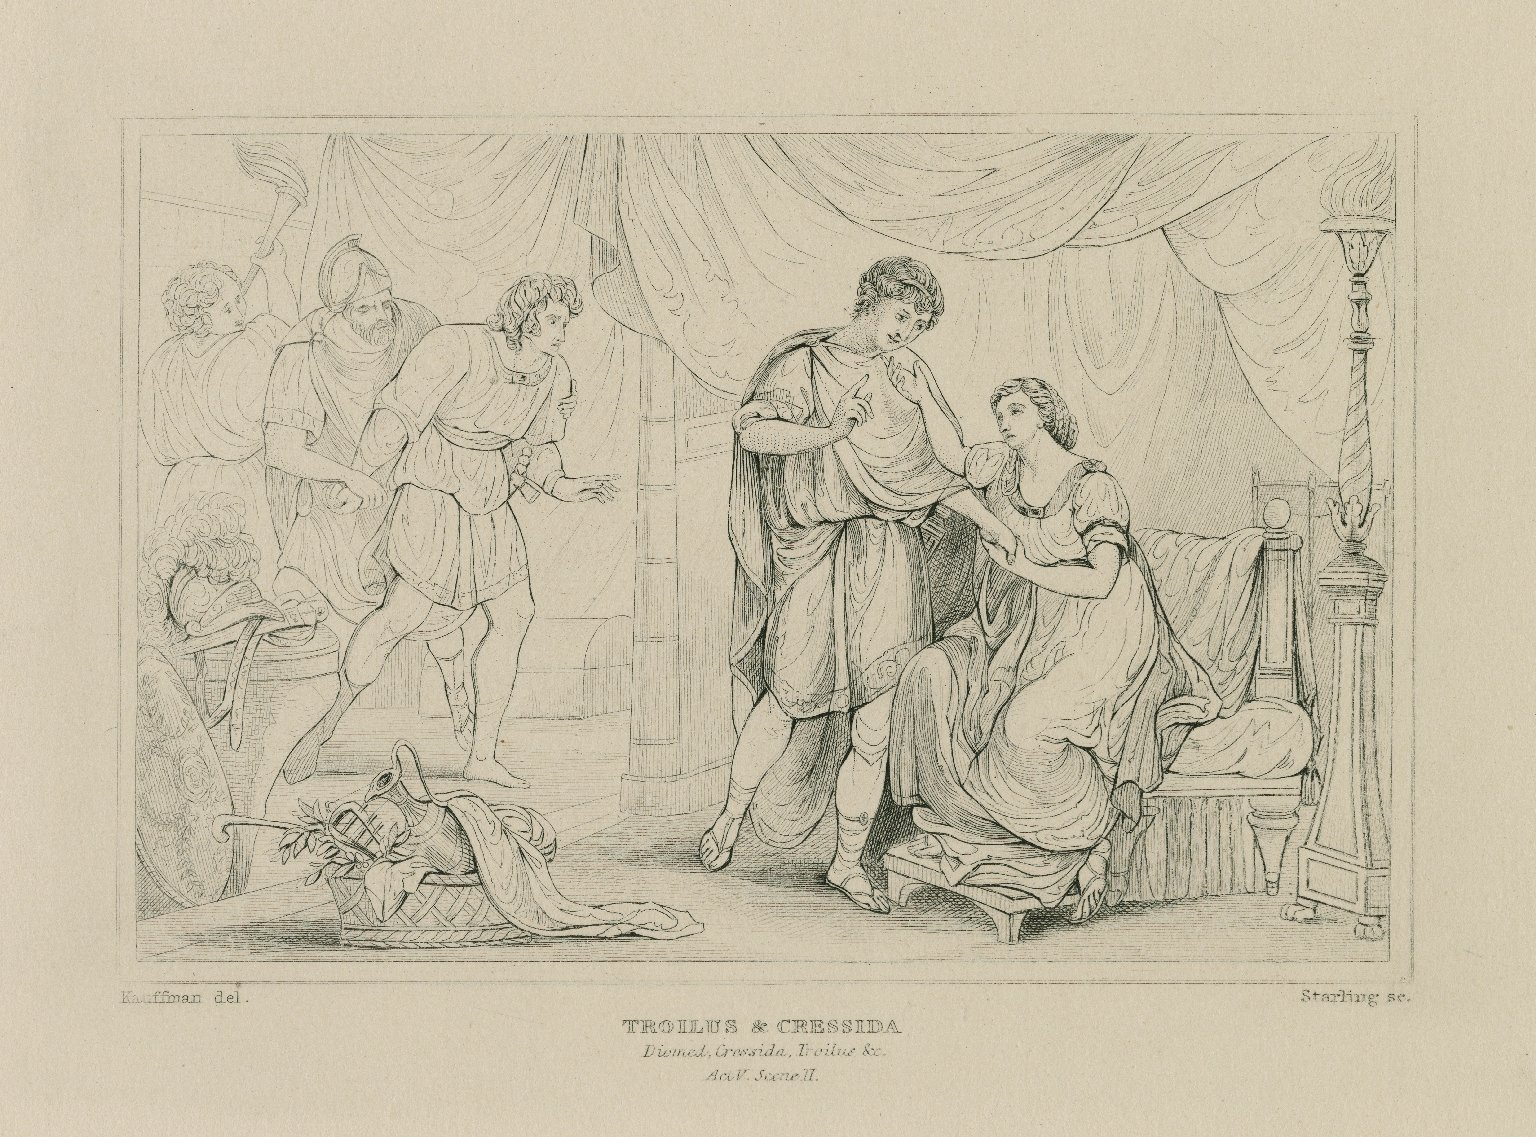 """Troilus & Cressida, Ulys.: """"You shake, my Lord, at something, will you go? You will break out,"""" act V, sc. 2 [graphic] / painted by Angelica Kauffman ; Starling sc."""